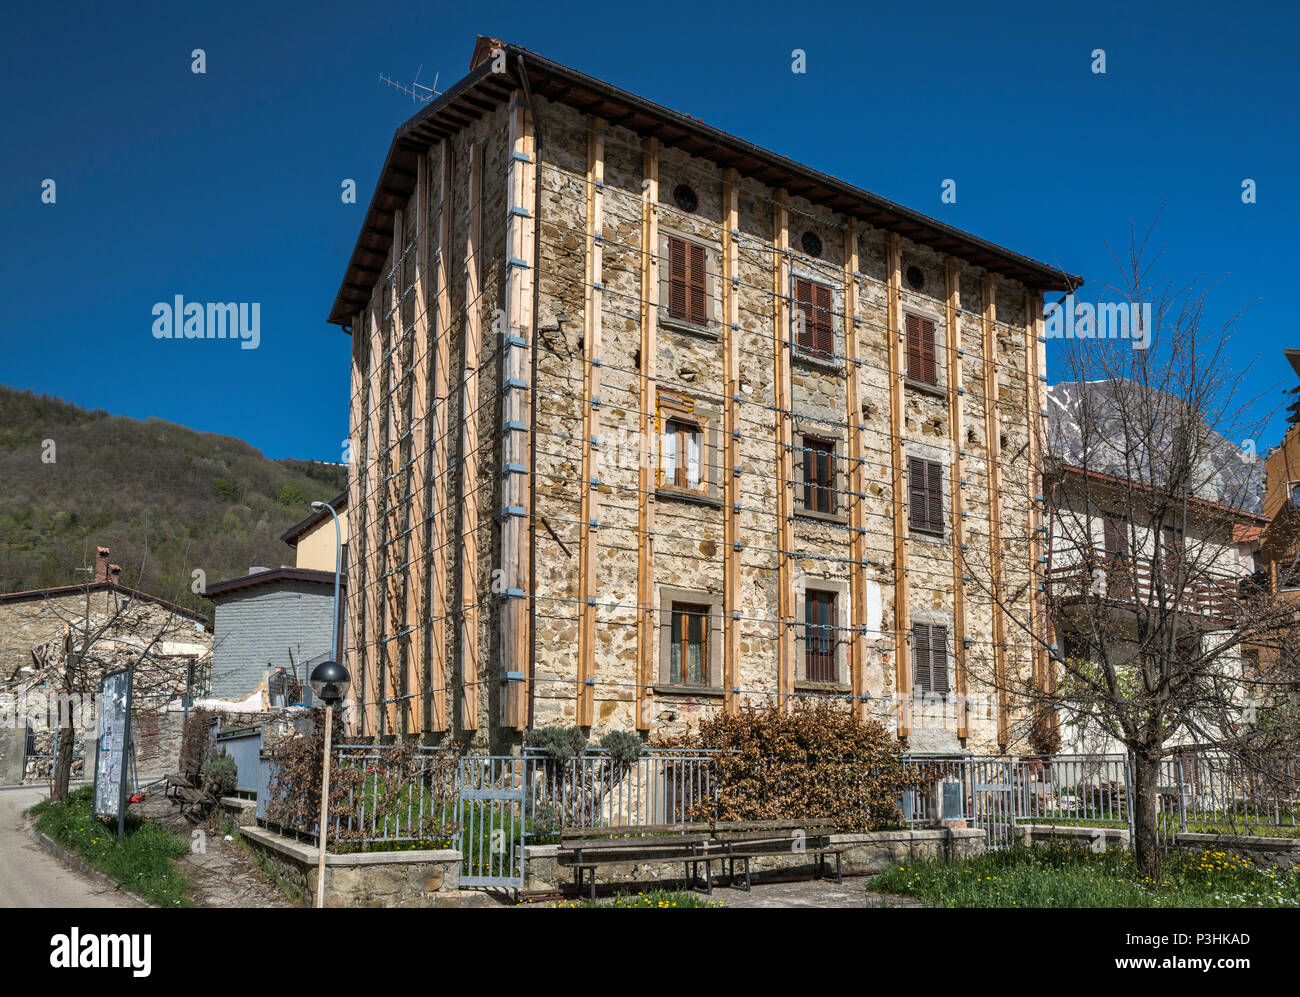 Abandoned building protected by steel braces in village of Piedilama, destroyed by  earthquakes in October 2016, Central Apennines, Marche, Italy - Stock Image